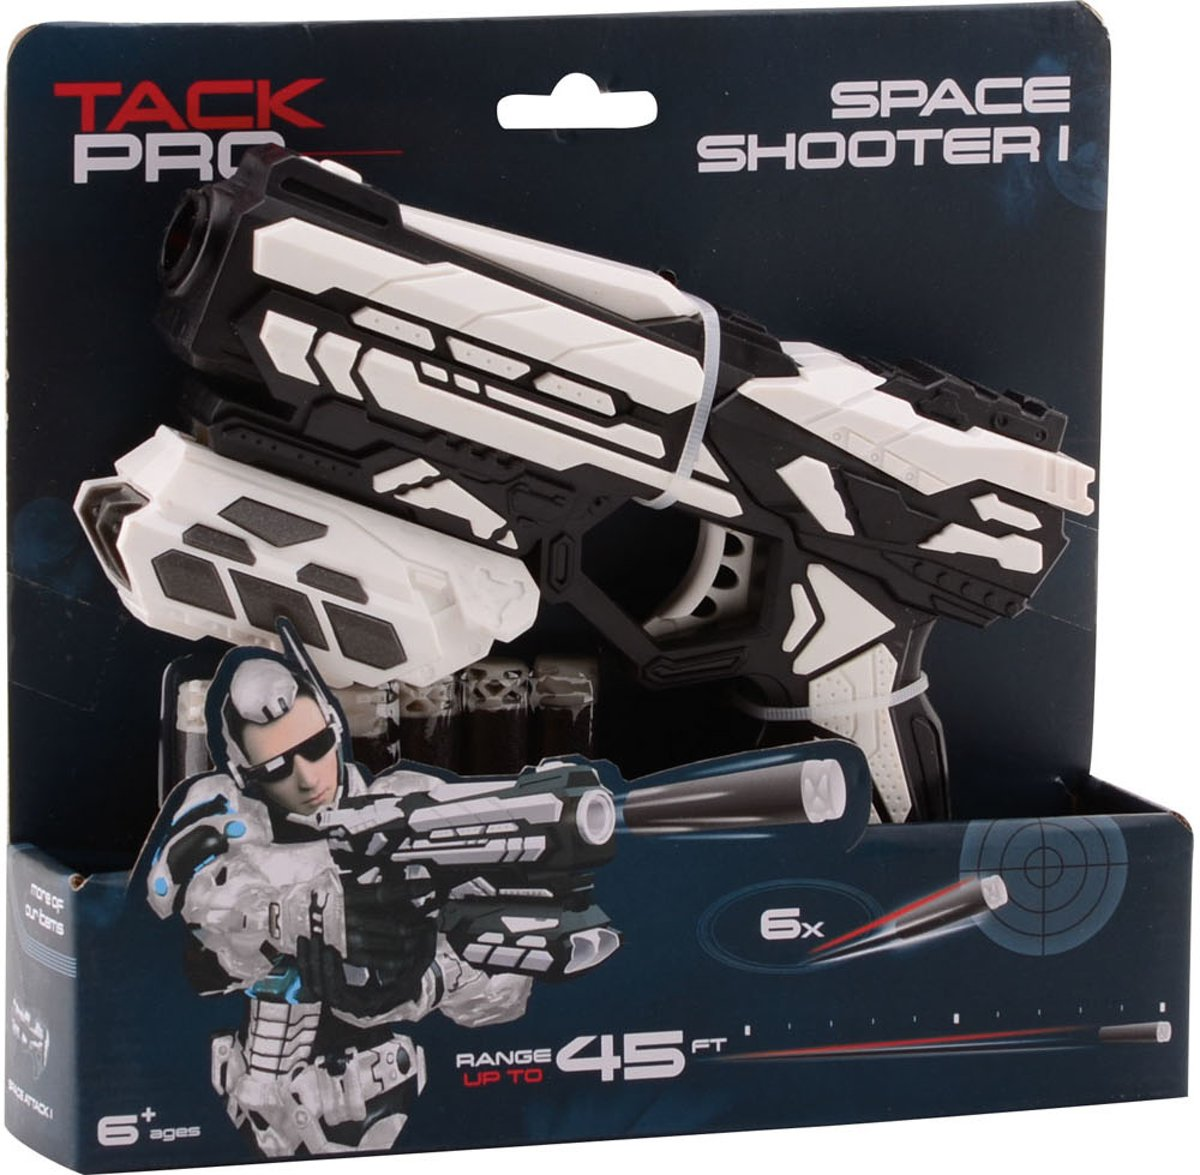 Tack Pro Space Shooter 1 met 6 darts, 18 cm